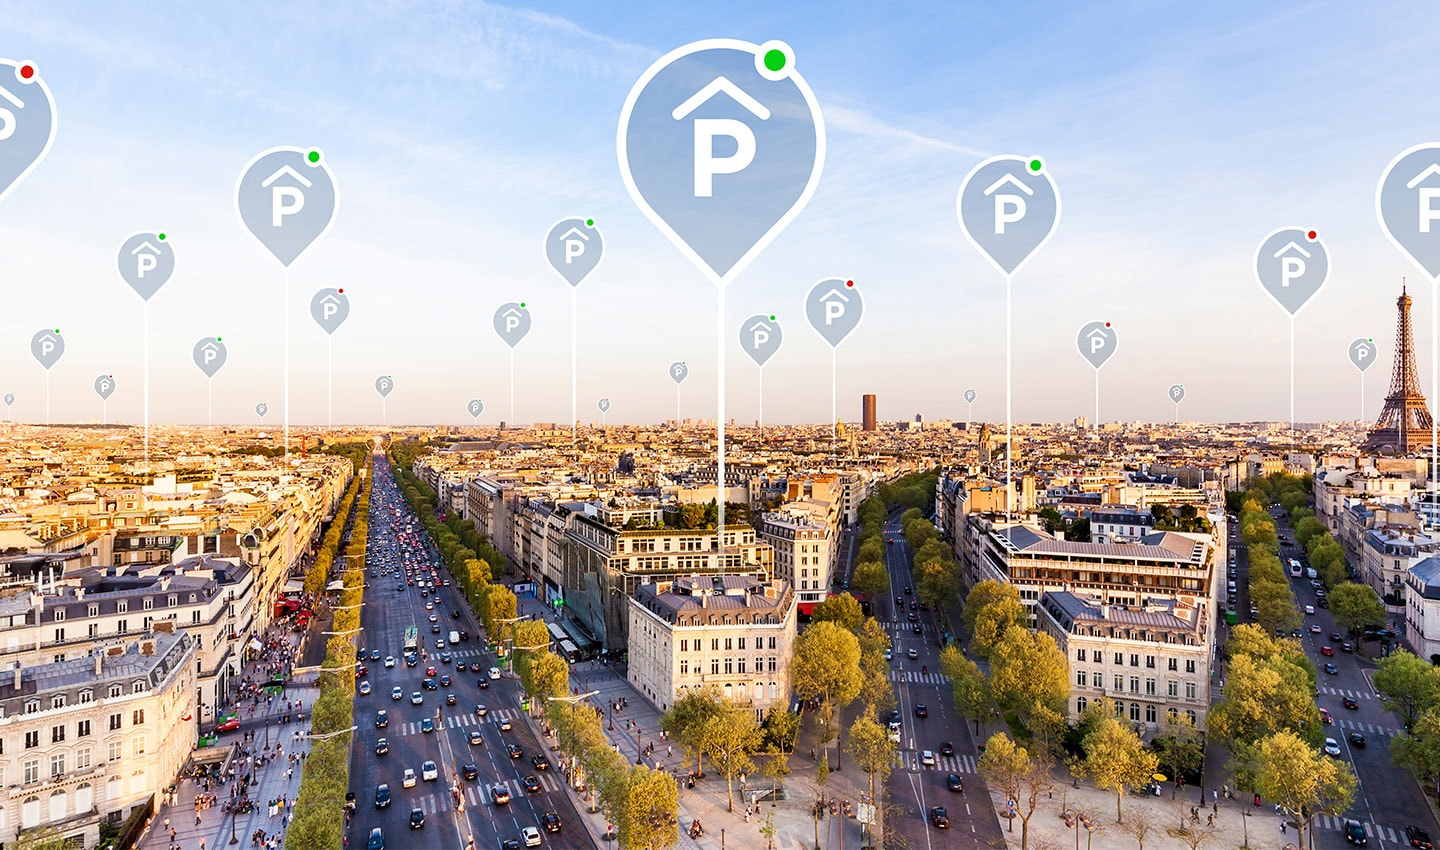 future-of-mobility-is-connected-parking